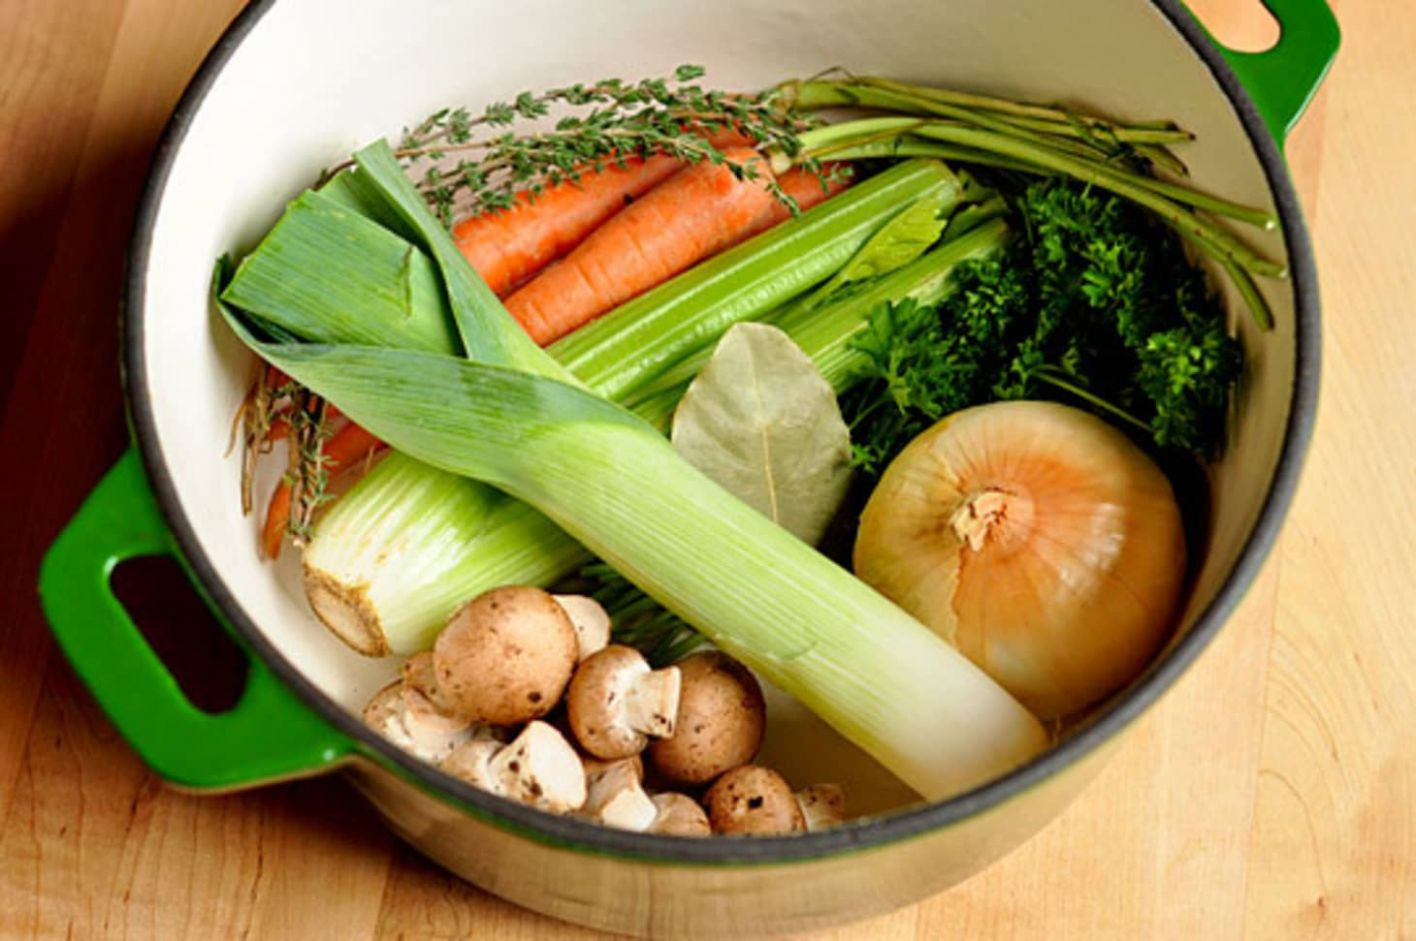 How To Make Vegetable Stock - Recipes With Vegetable Stock